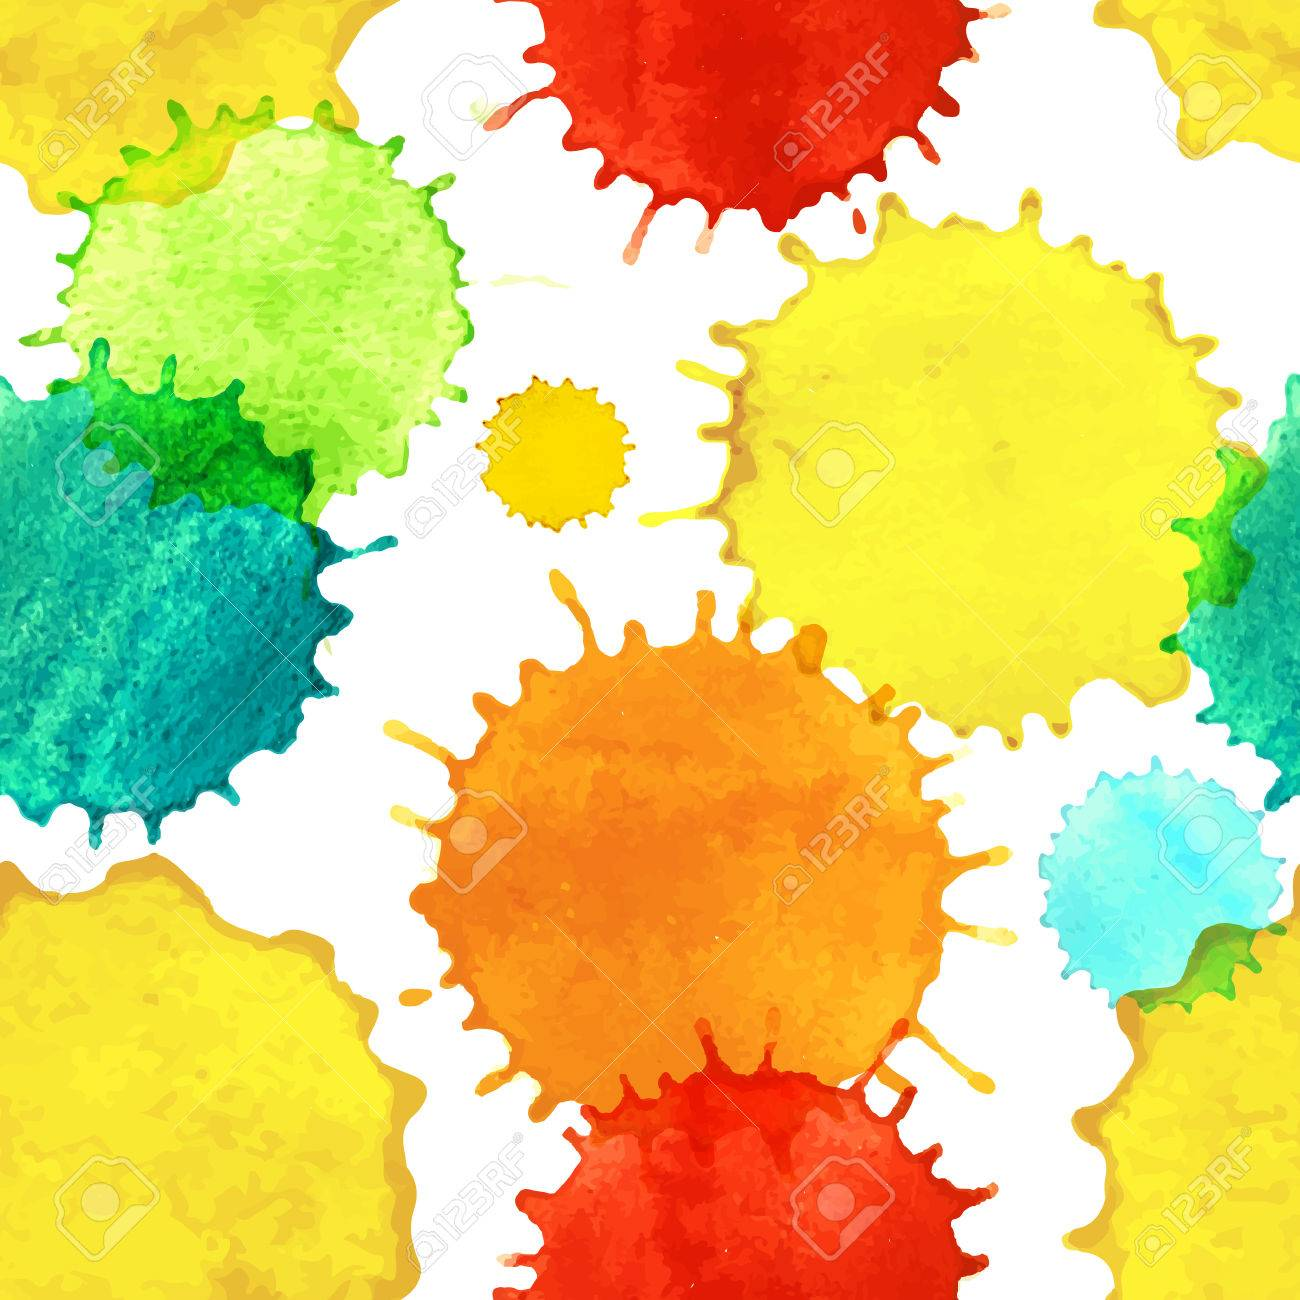 Seamless pattern with colorful watercolor paint splash drops  Template for your design  Vector illustration Stock Vector - 26017957